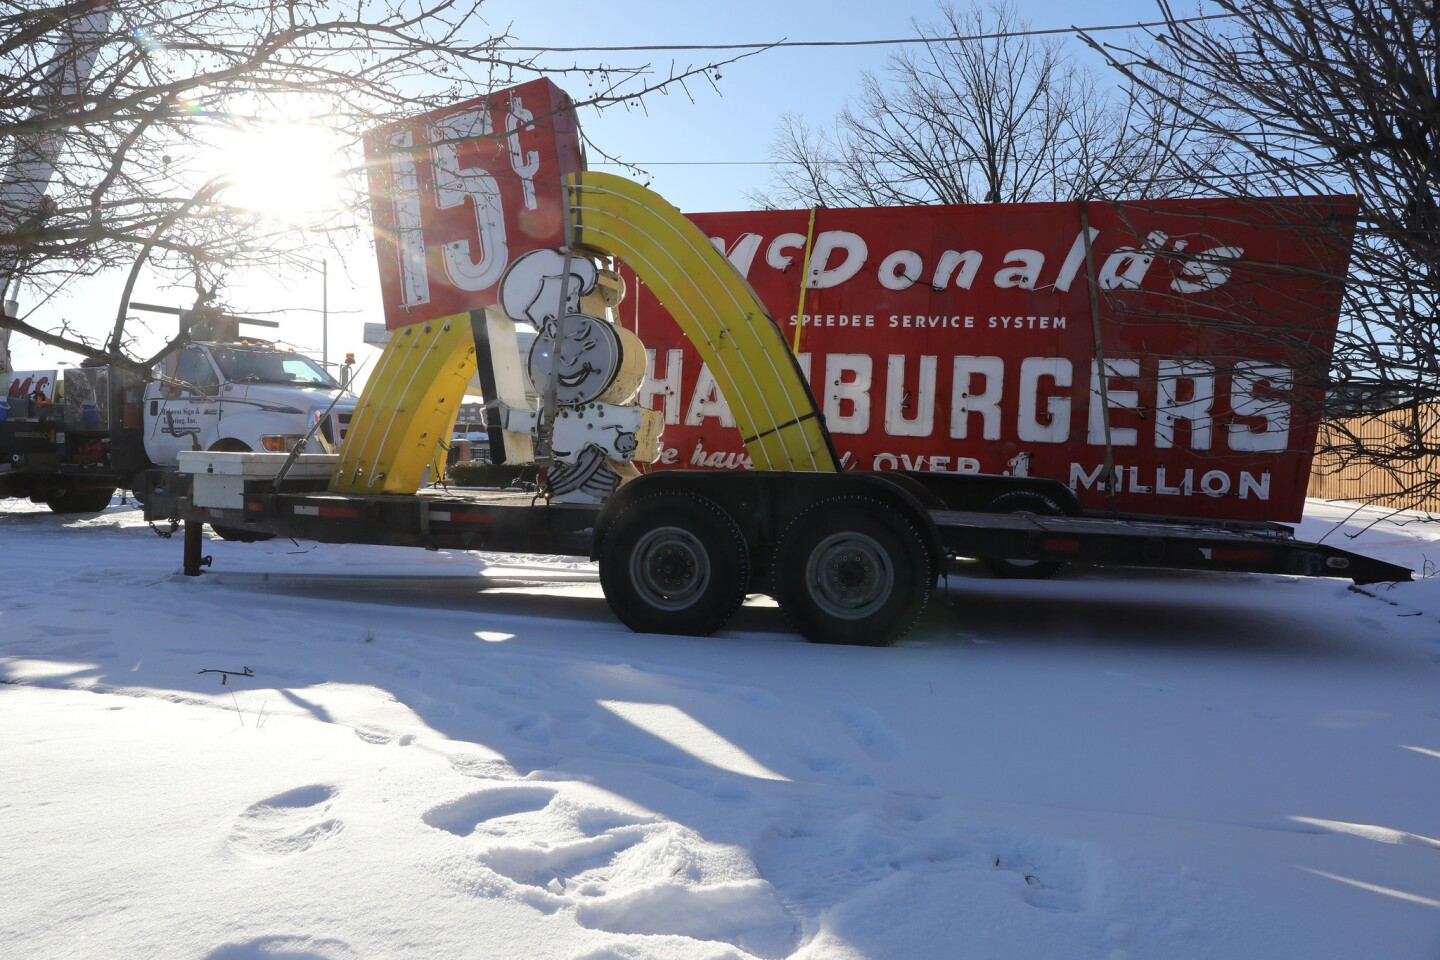 Workers dismantle the sign at the McDonald's museum in Des Plaines. A model of the first McDonald's franchise restaurant, the museum has been closed in recent years. McDonald's said visitors to the site have declined in the last decade since tourists have been barred from entering the space. Flooding in the area also continues to be a problem.